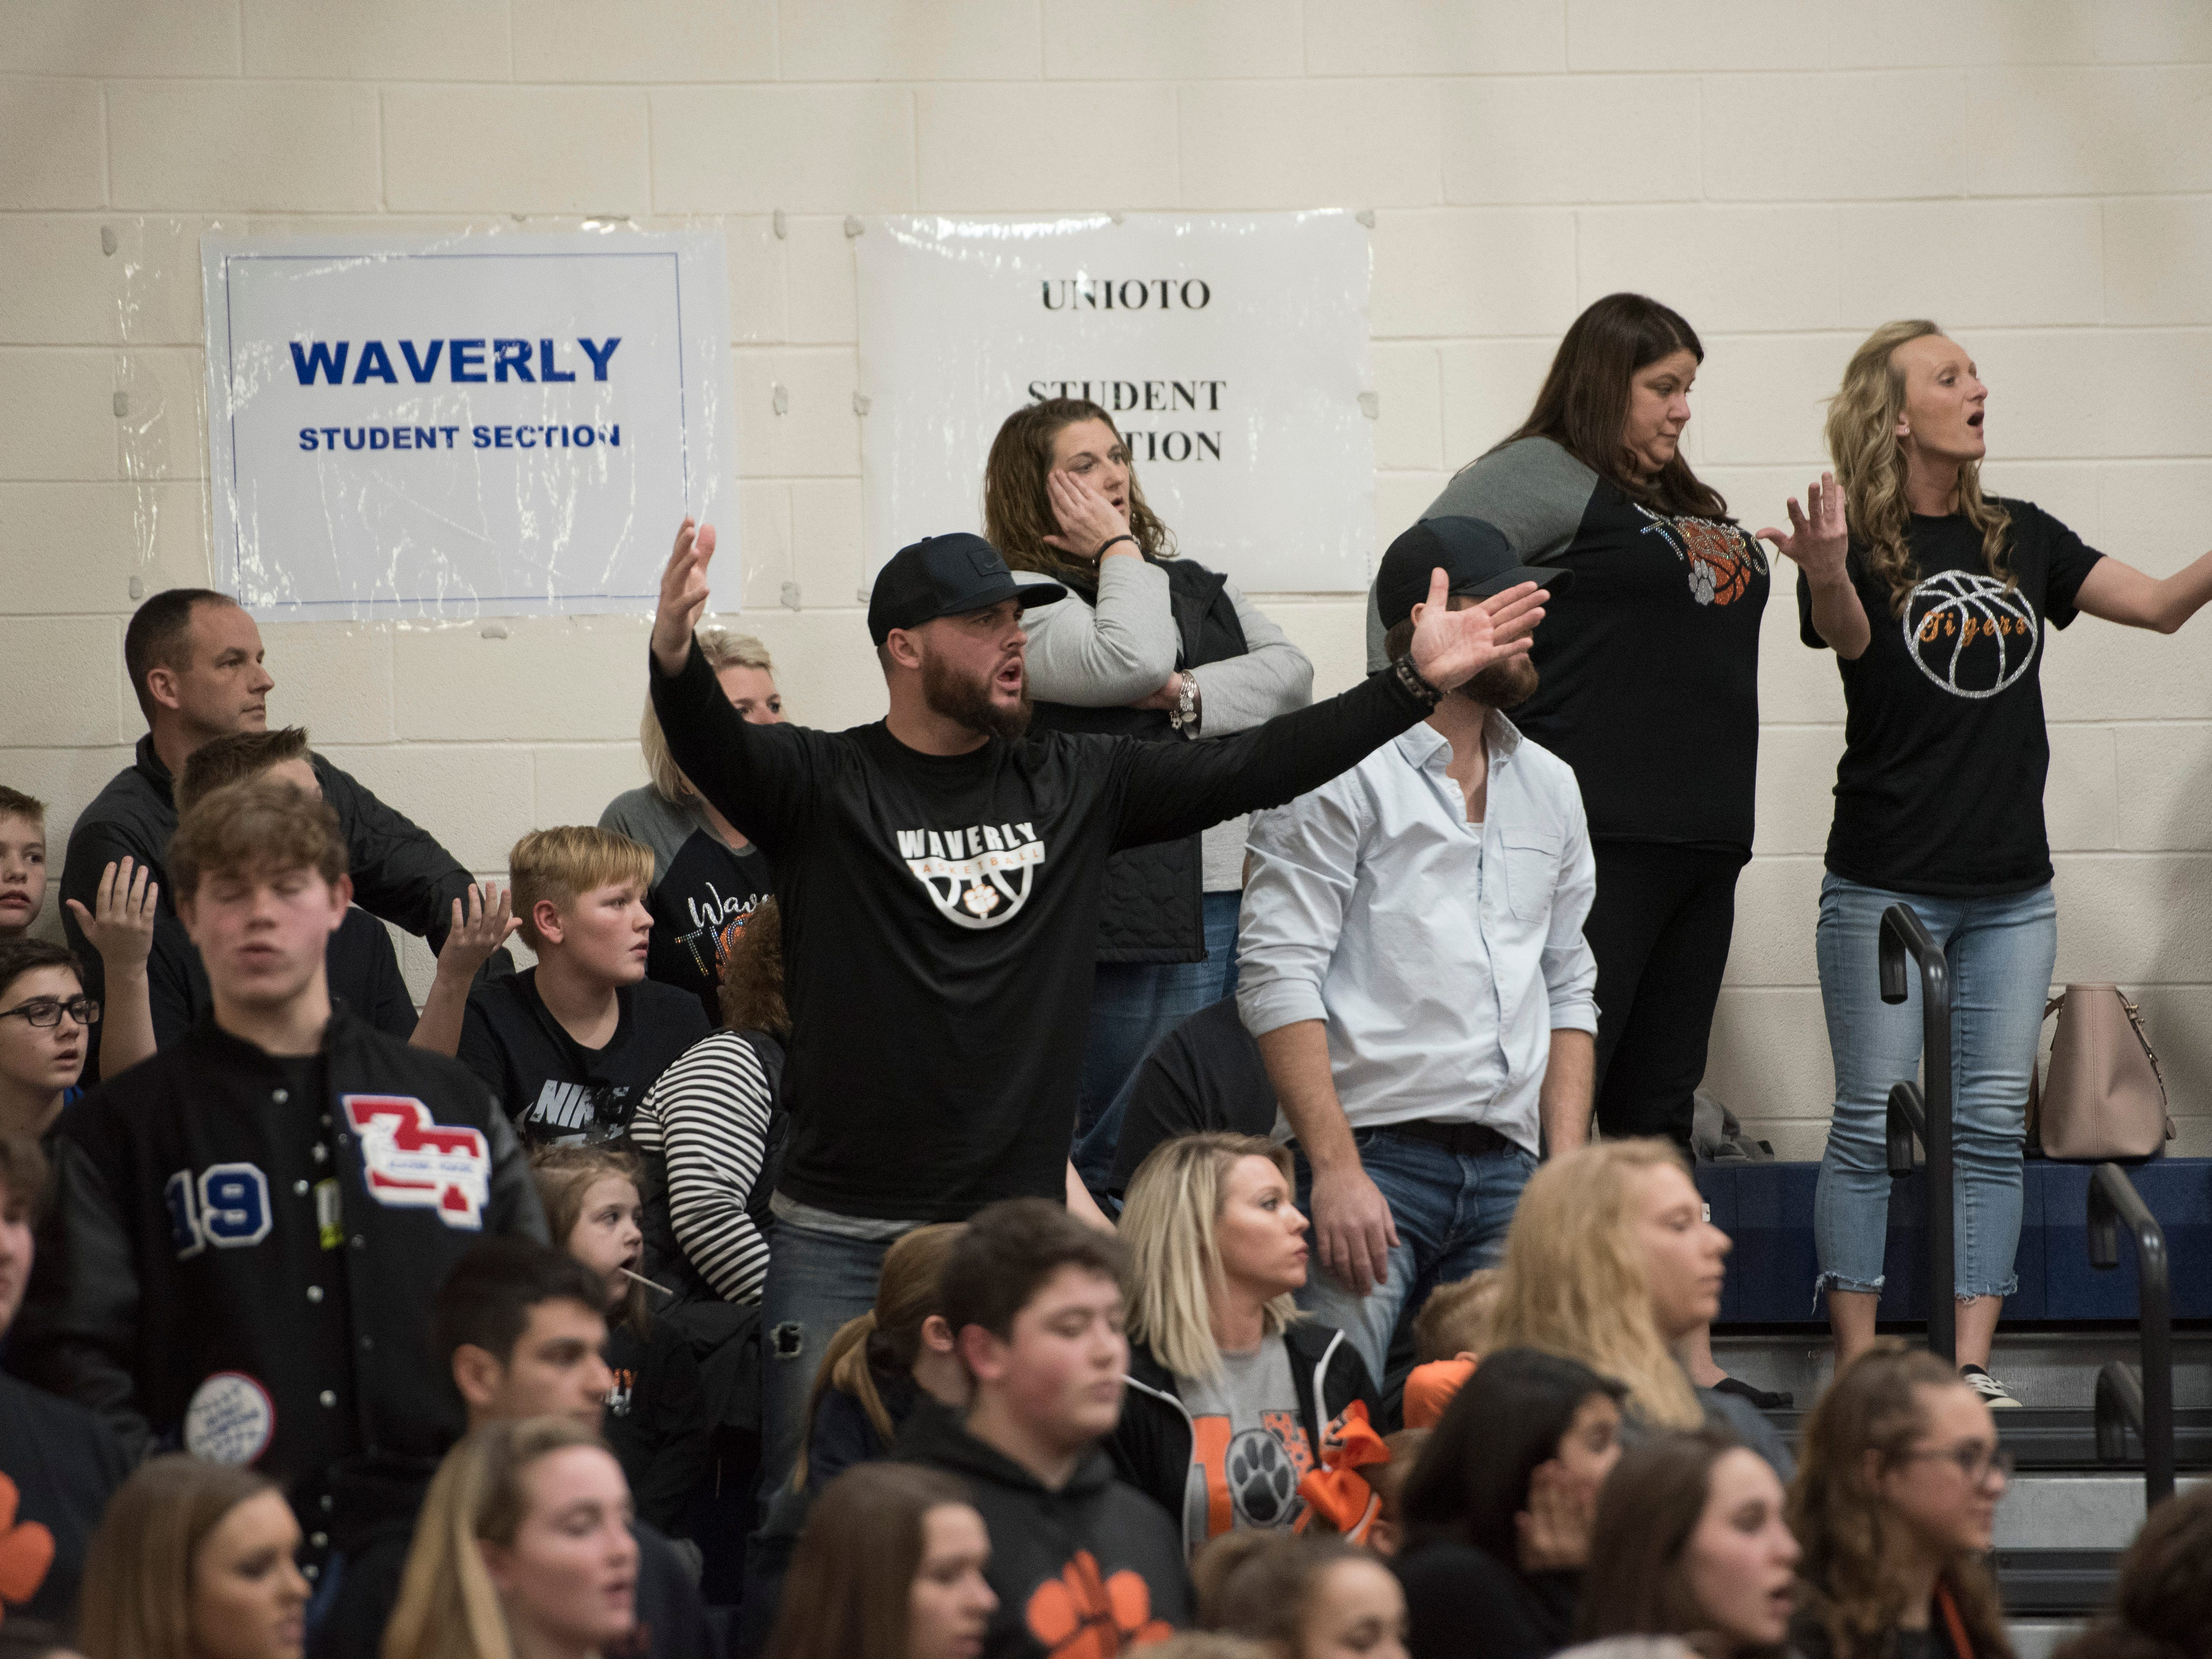 Waverly defeated McClain 67-66 in a Division II sectional final Friday night at Southeastern High School.